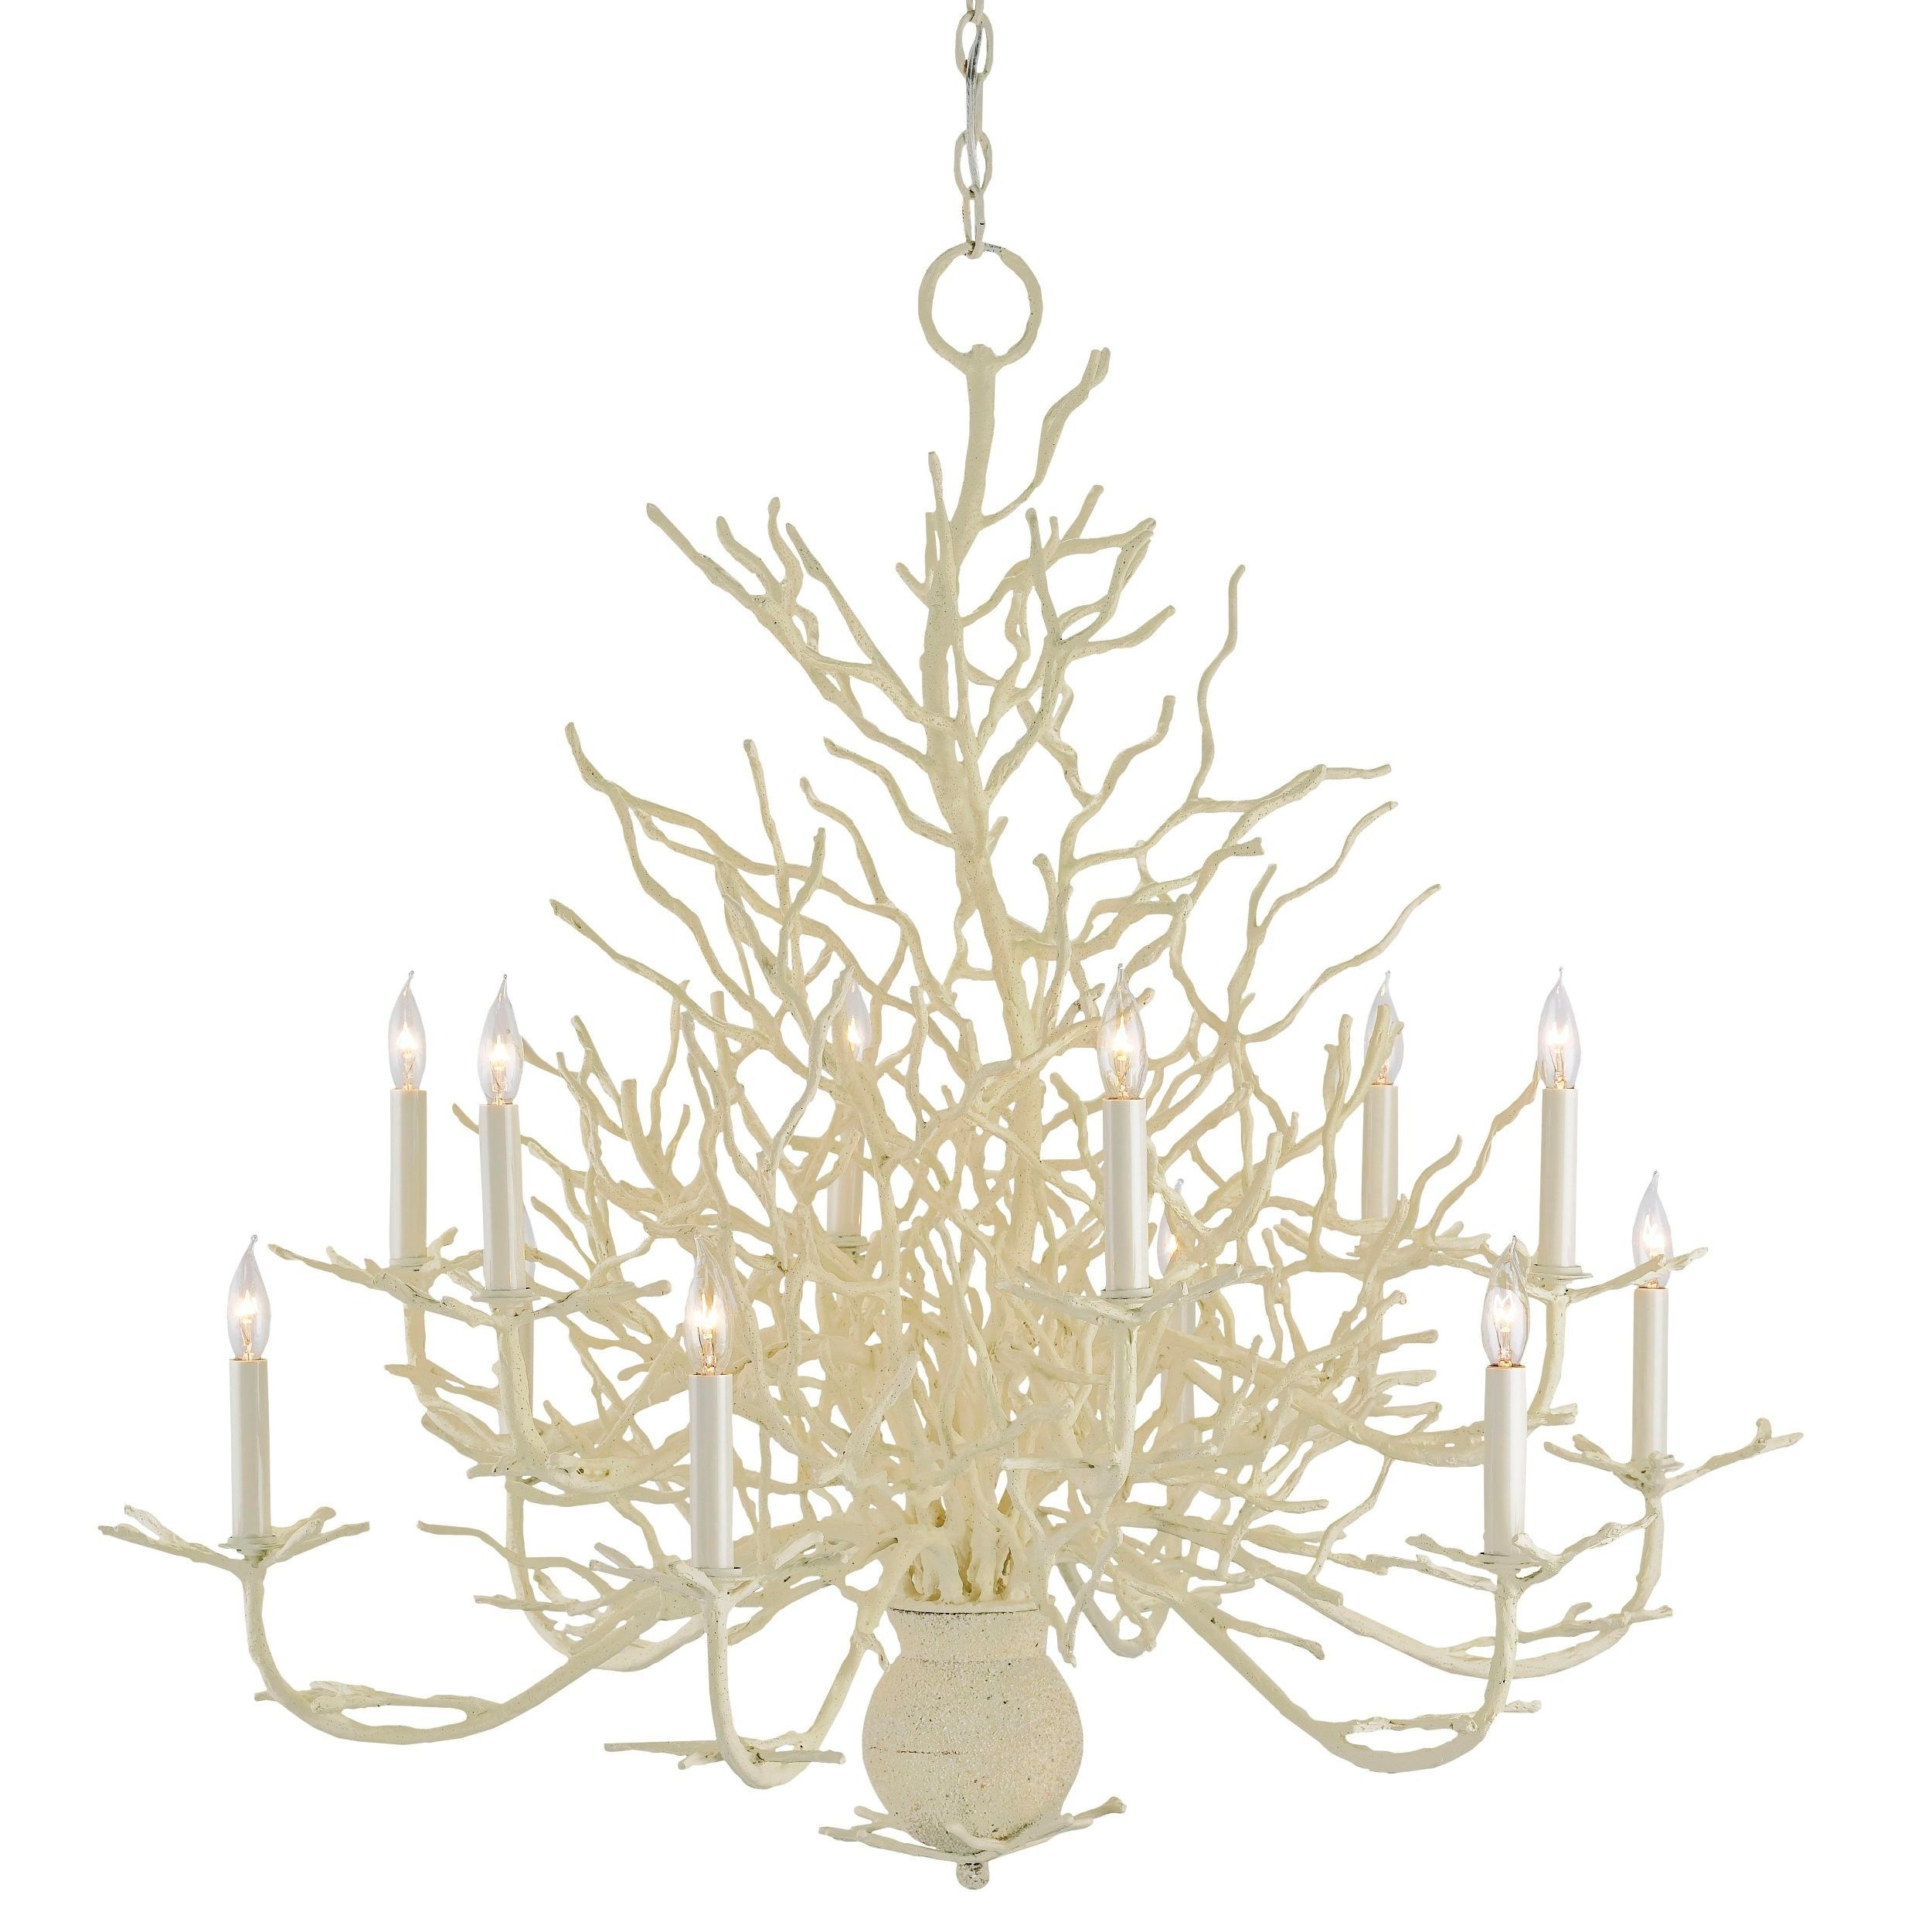 Recall seaside days and summer nights with the spectacular Seaward Chandelier. Wrought iron is realistically transformed to resemble White coral, then enhanced with an incredibly natural application of sand. This fresh, large-scale design will dress up any coastally-inspired home.    Number of bulbs: 12  Chain length: 6 feet    As seen in Traditional Home July/August 2014 Issue. **refer to photo 2**